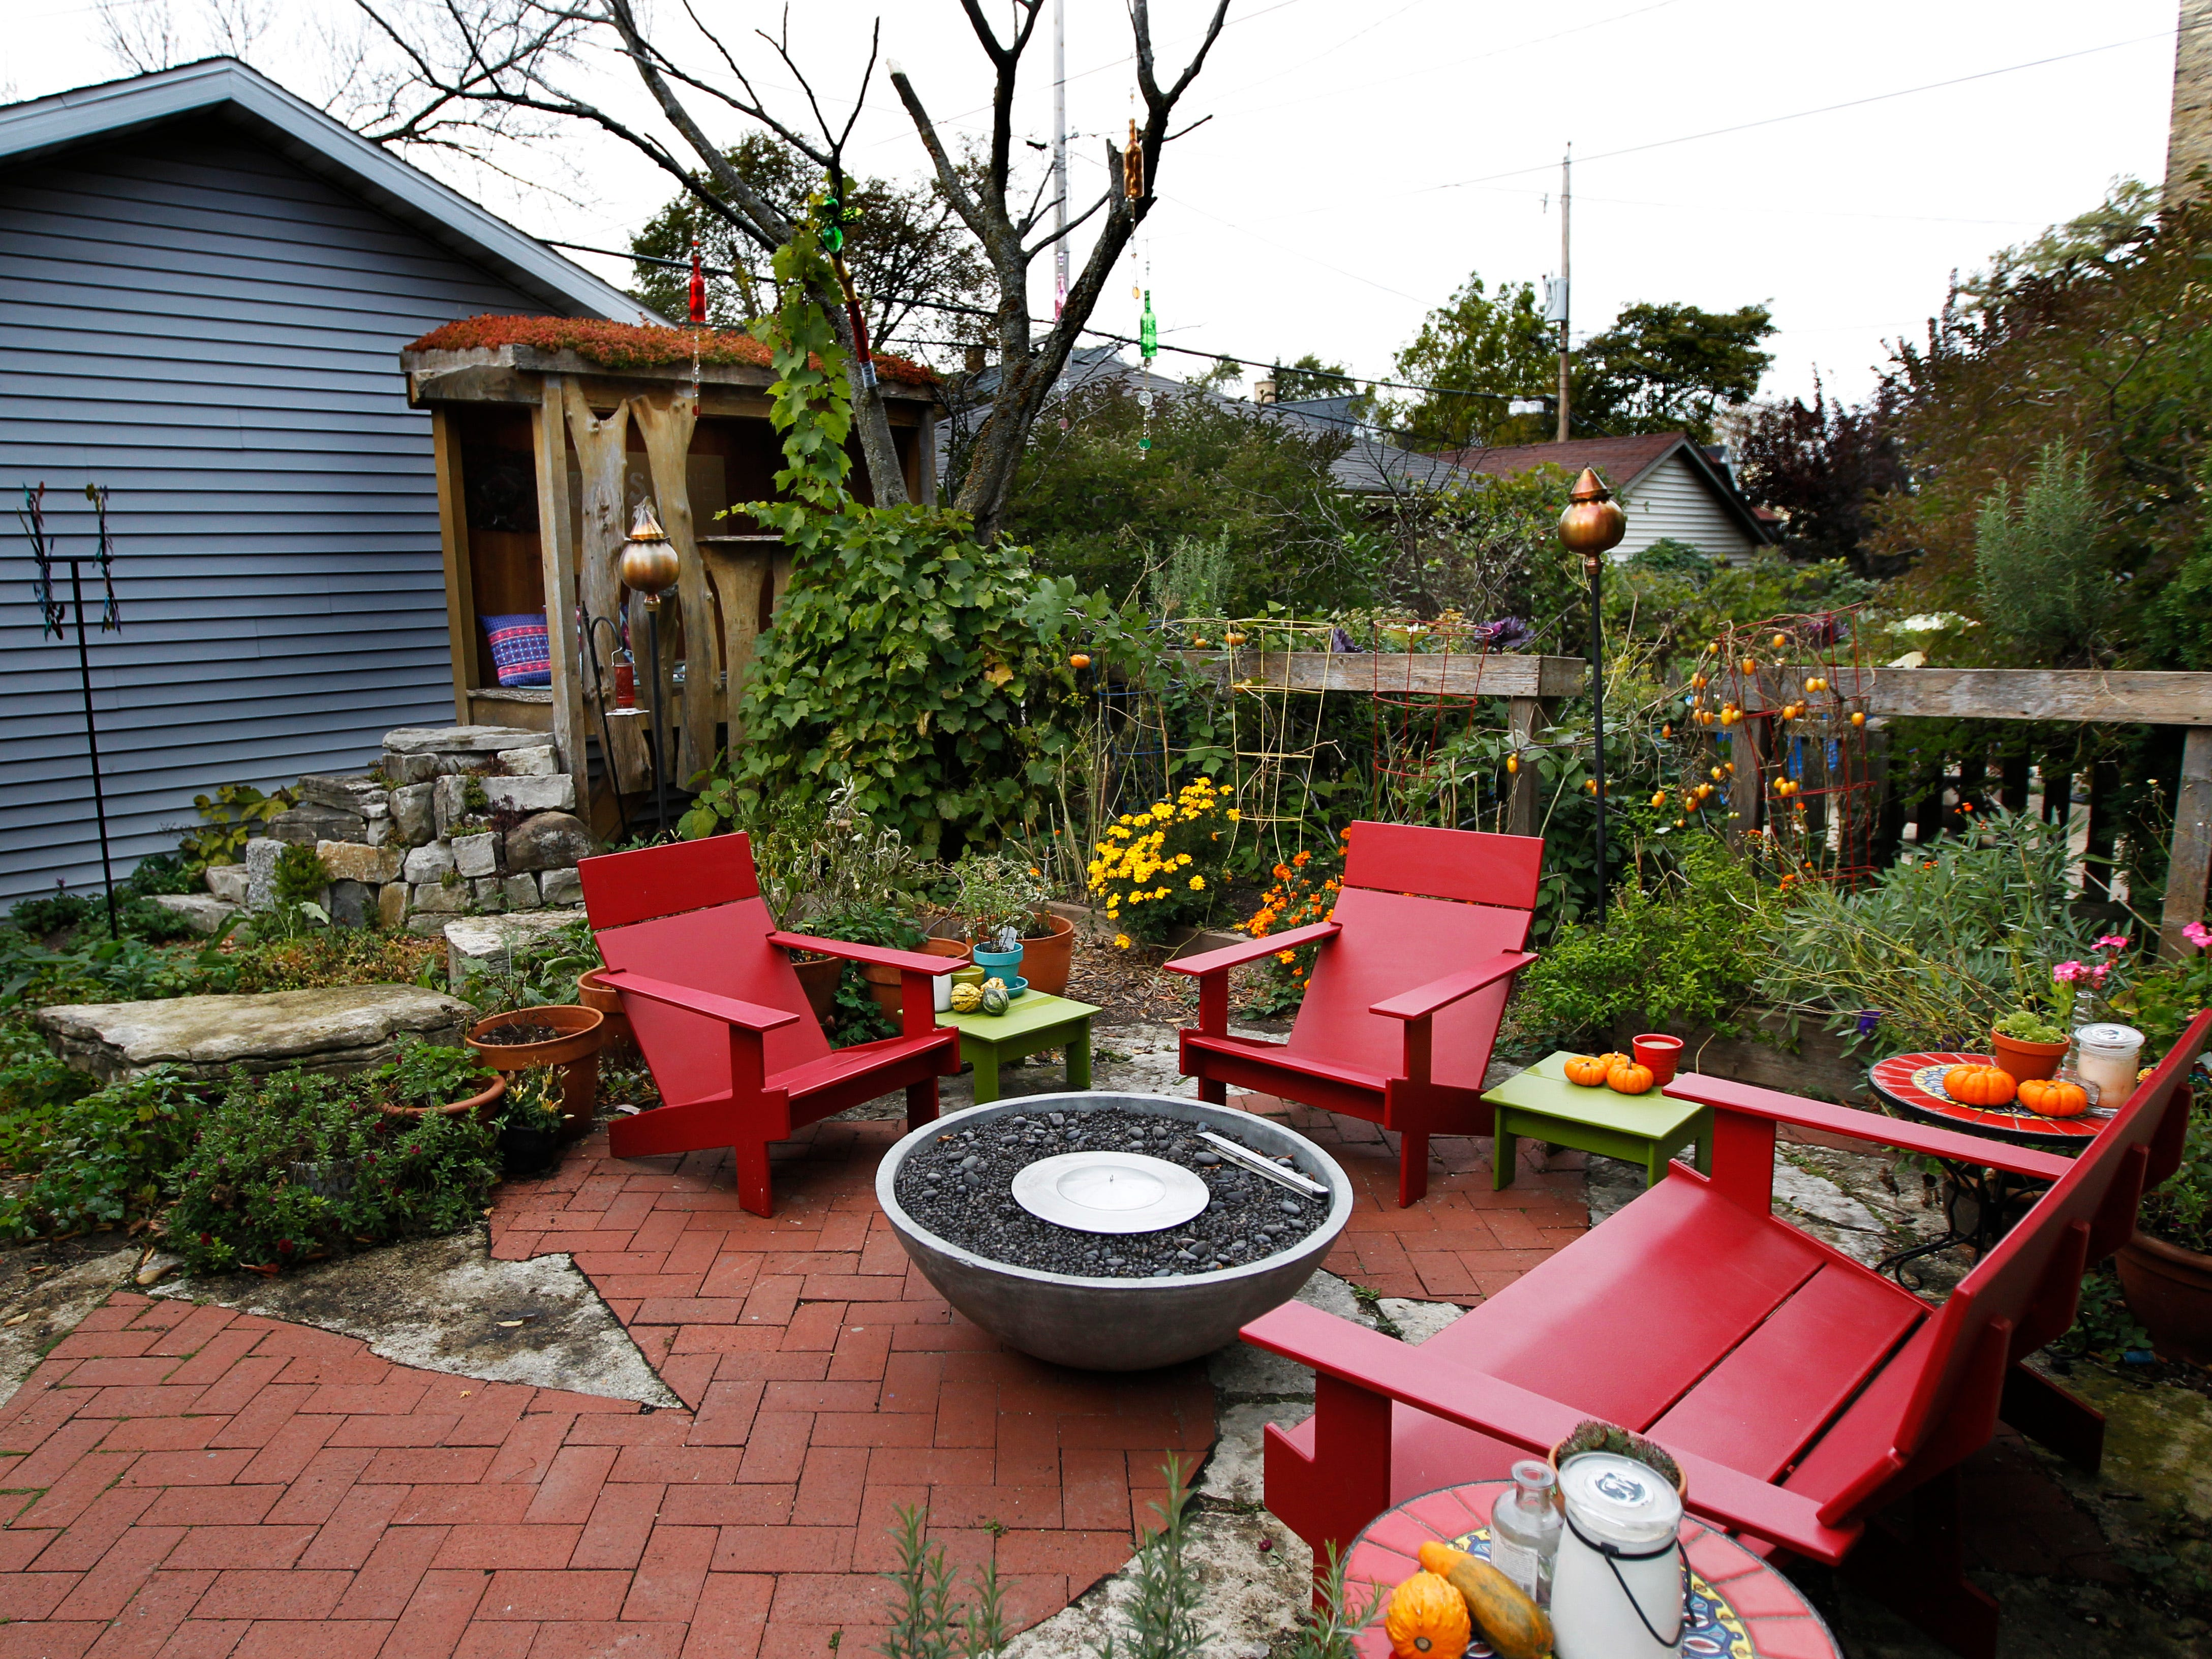 Colorful patio furniture adds a pop of color in the backyard garden.